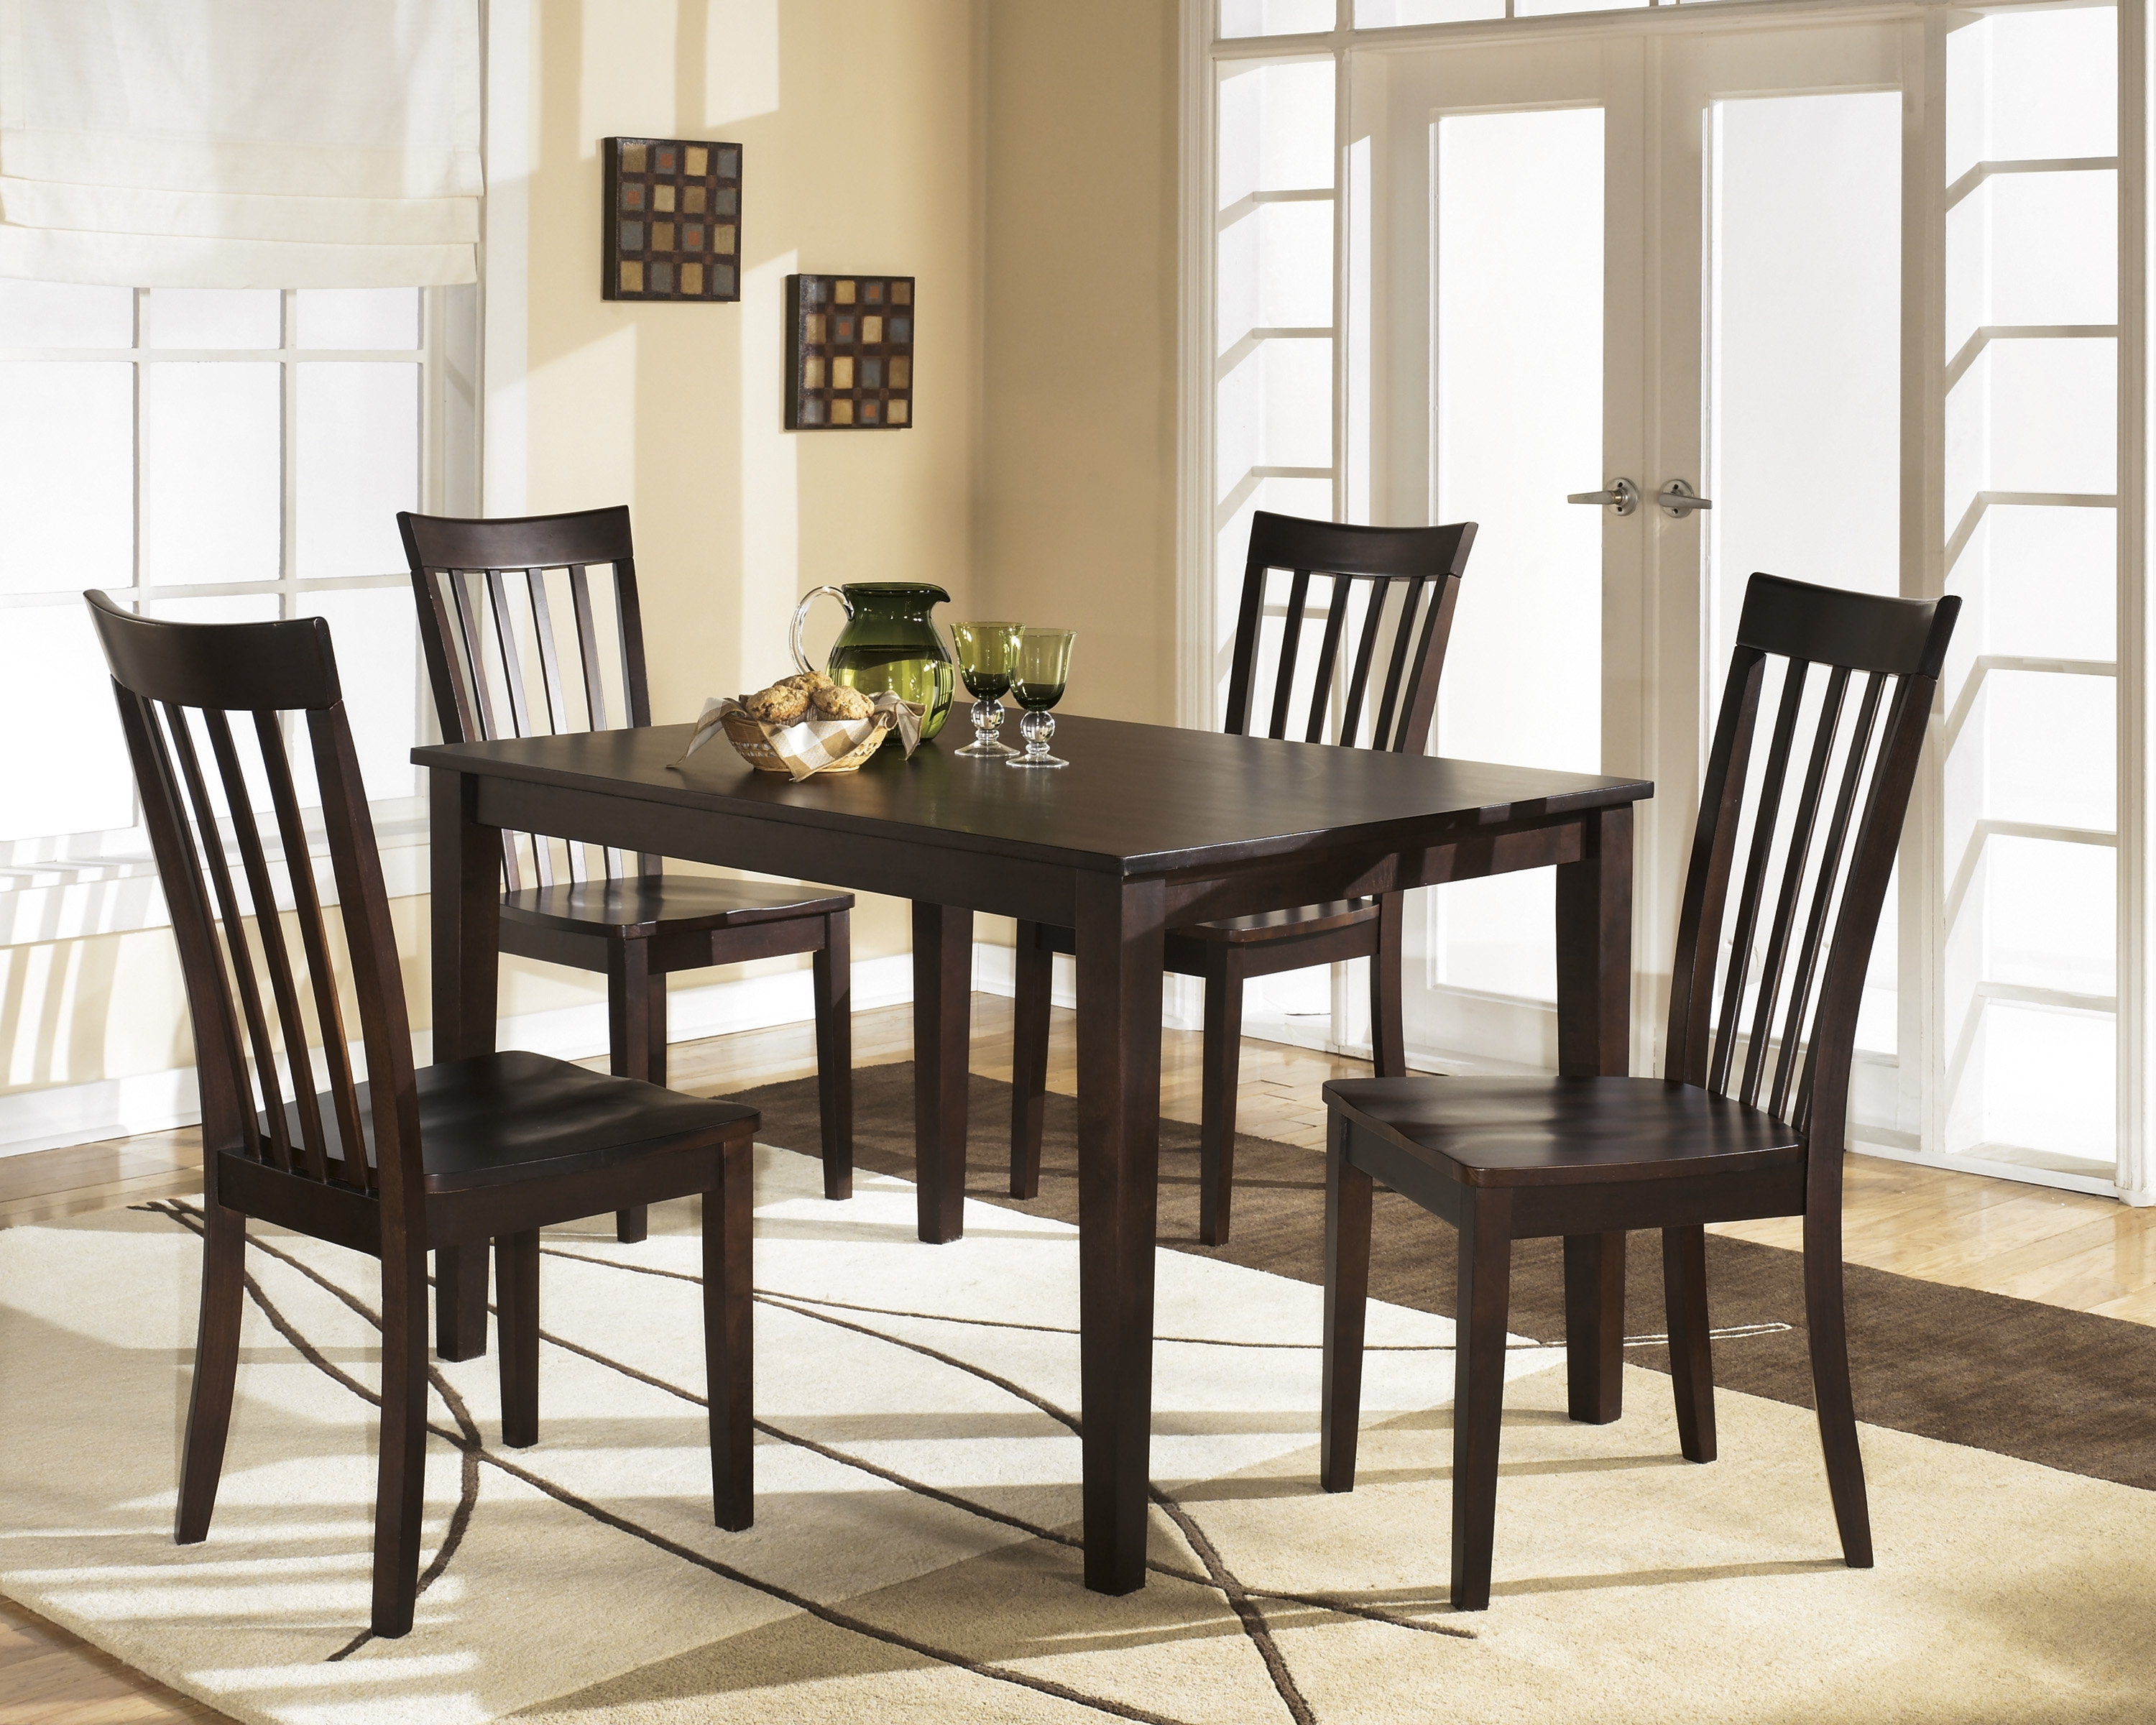 Well Liked Palazzo 7 Piece Dining Sets With Pearson White Side Chairs Inside Https://www.localfurnitureoutlet/mattresses (View 21 of 25)